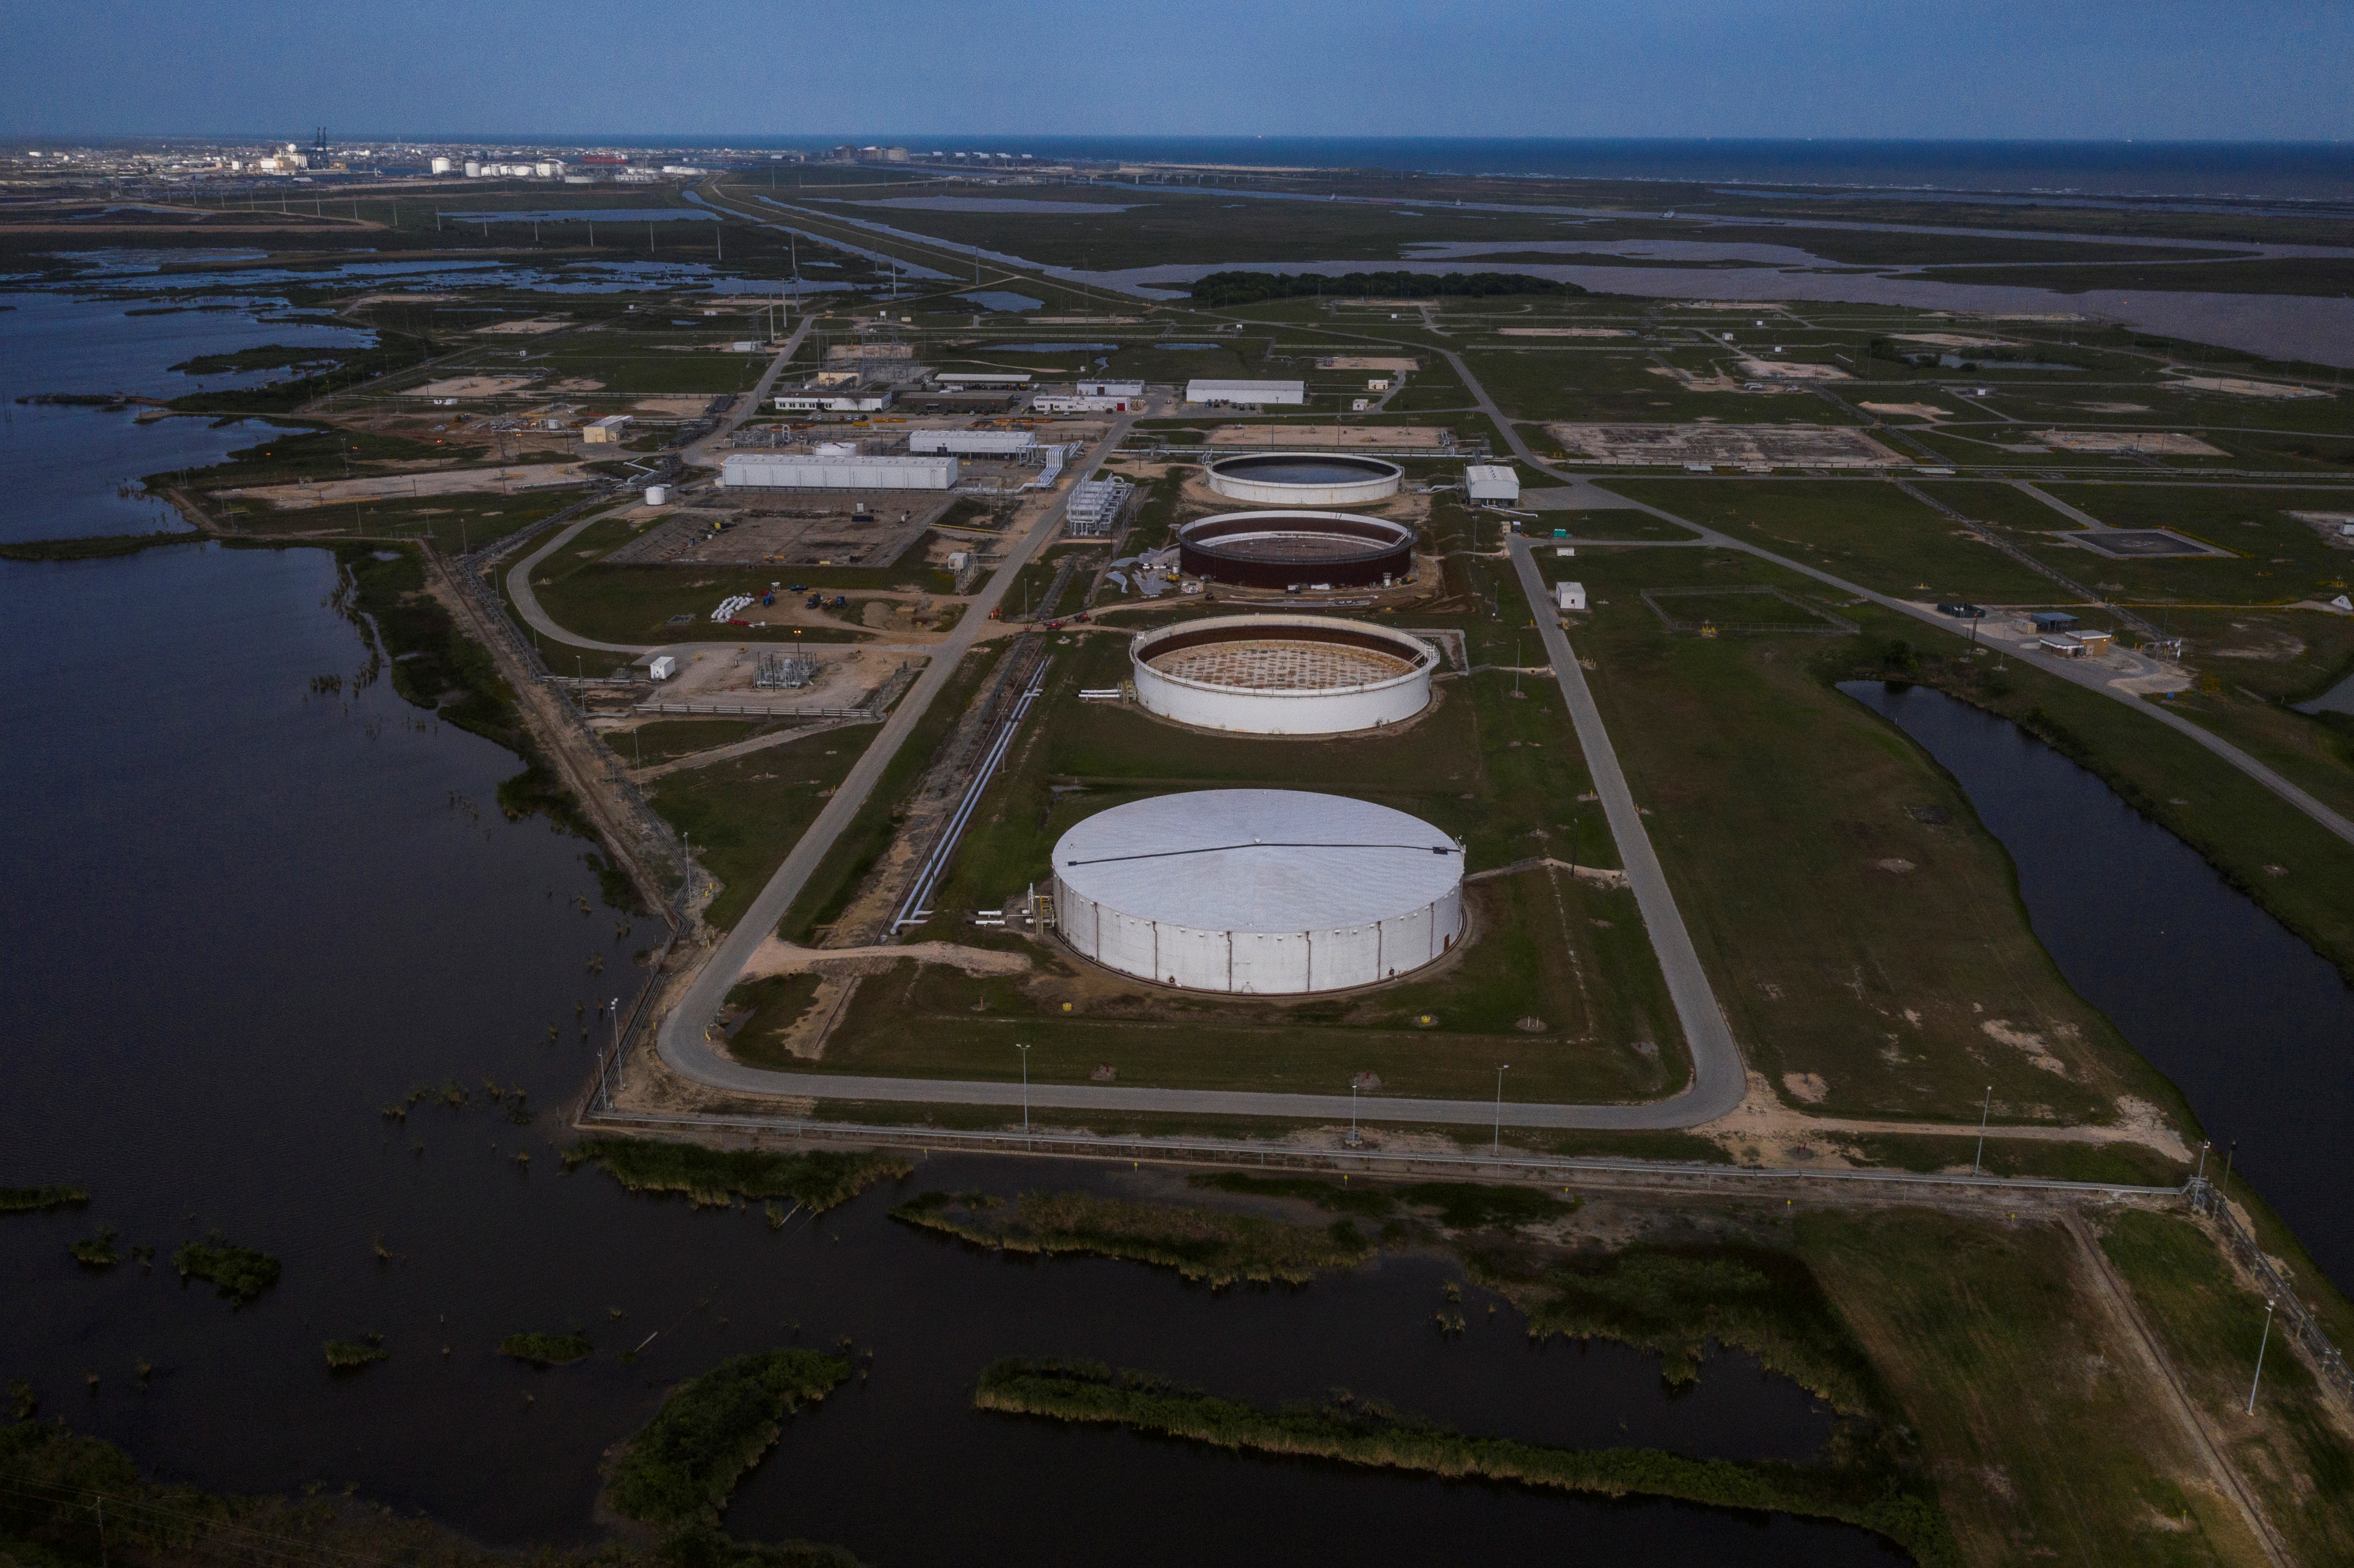 The Bryan Mound Strategic Petroleum Reserve, an oil storage facility, is seen in this aerial photograph over Freeport, Texas, U.S., April 27, 2020.  REUTERS/Adrees Latif